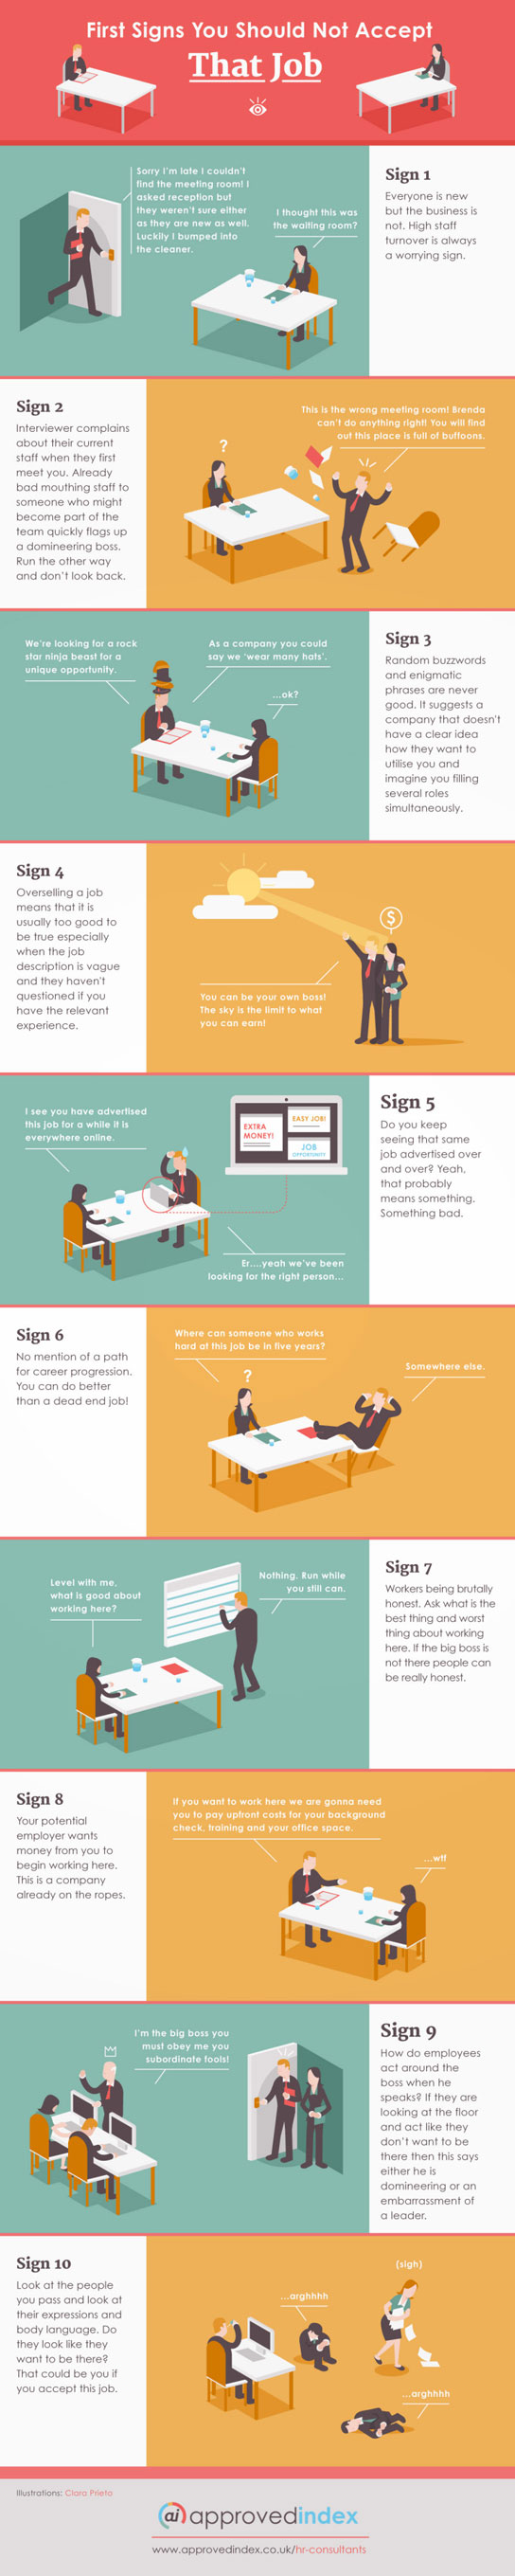 signs you should not accept a job offer infographic best job offer approval